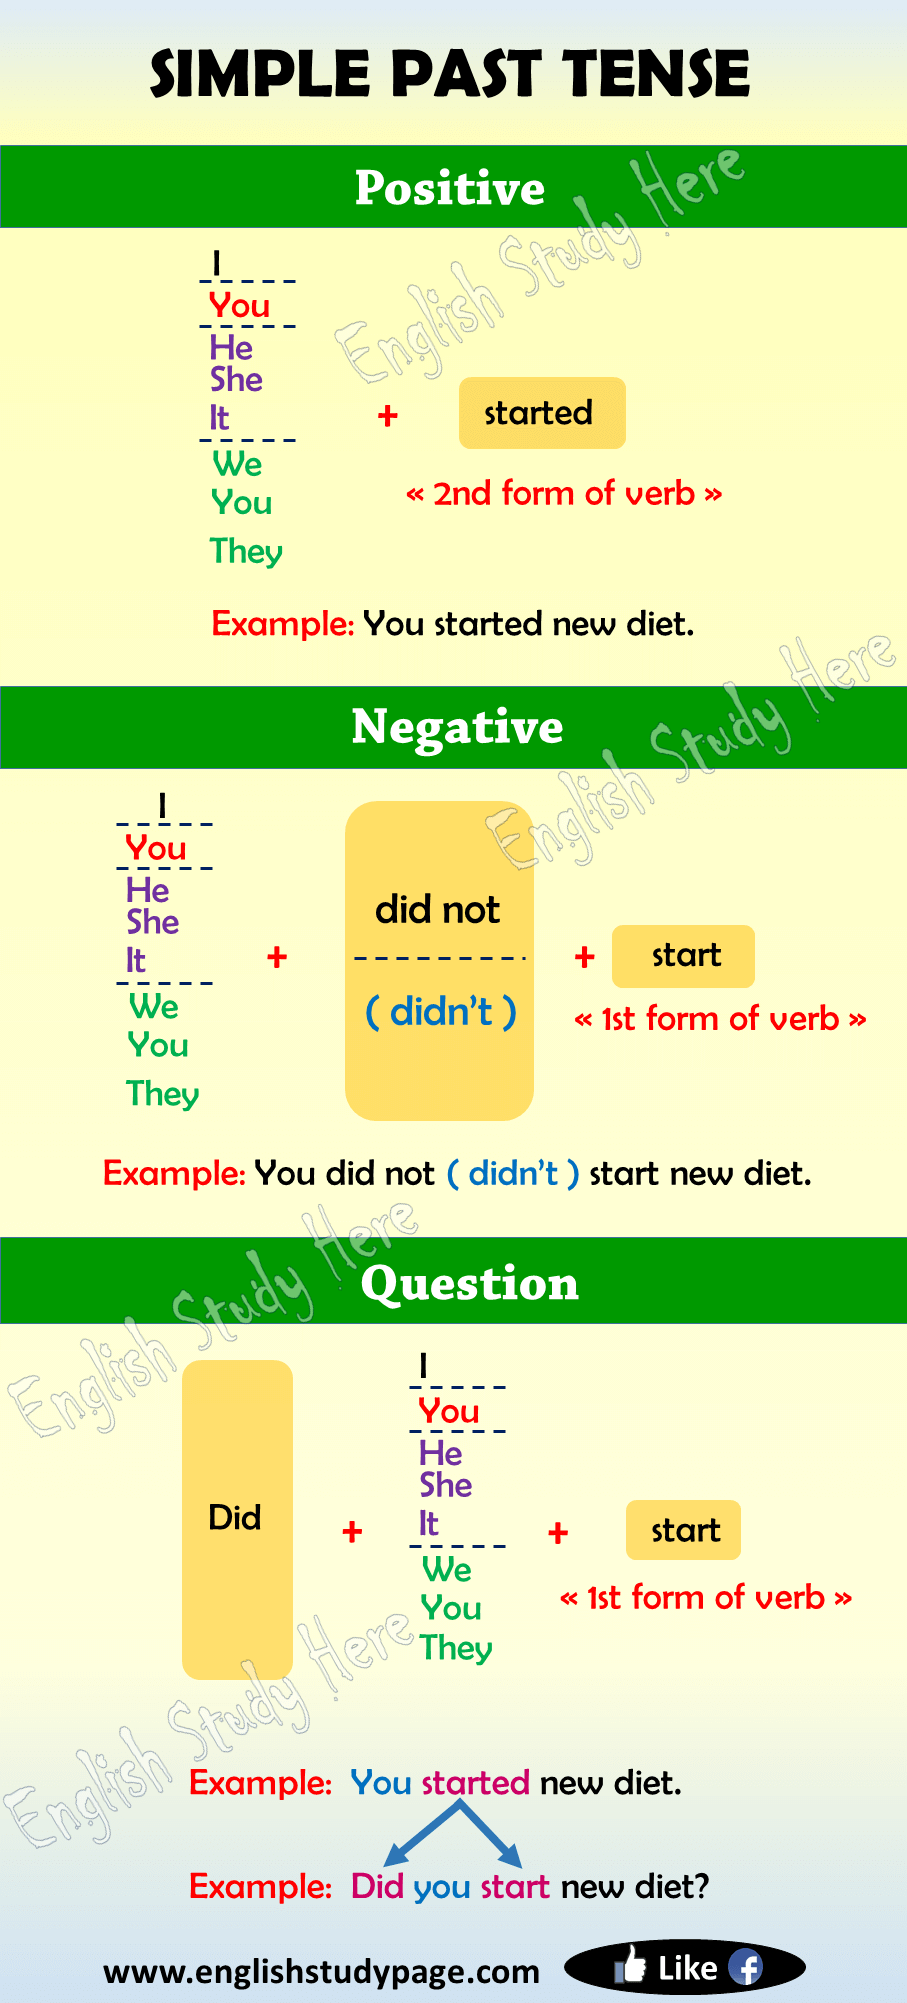 Simple Past Tense in English - English Study Here